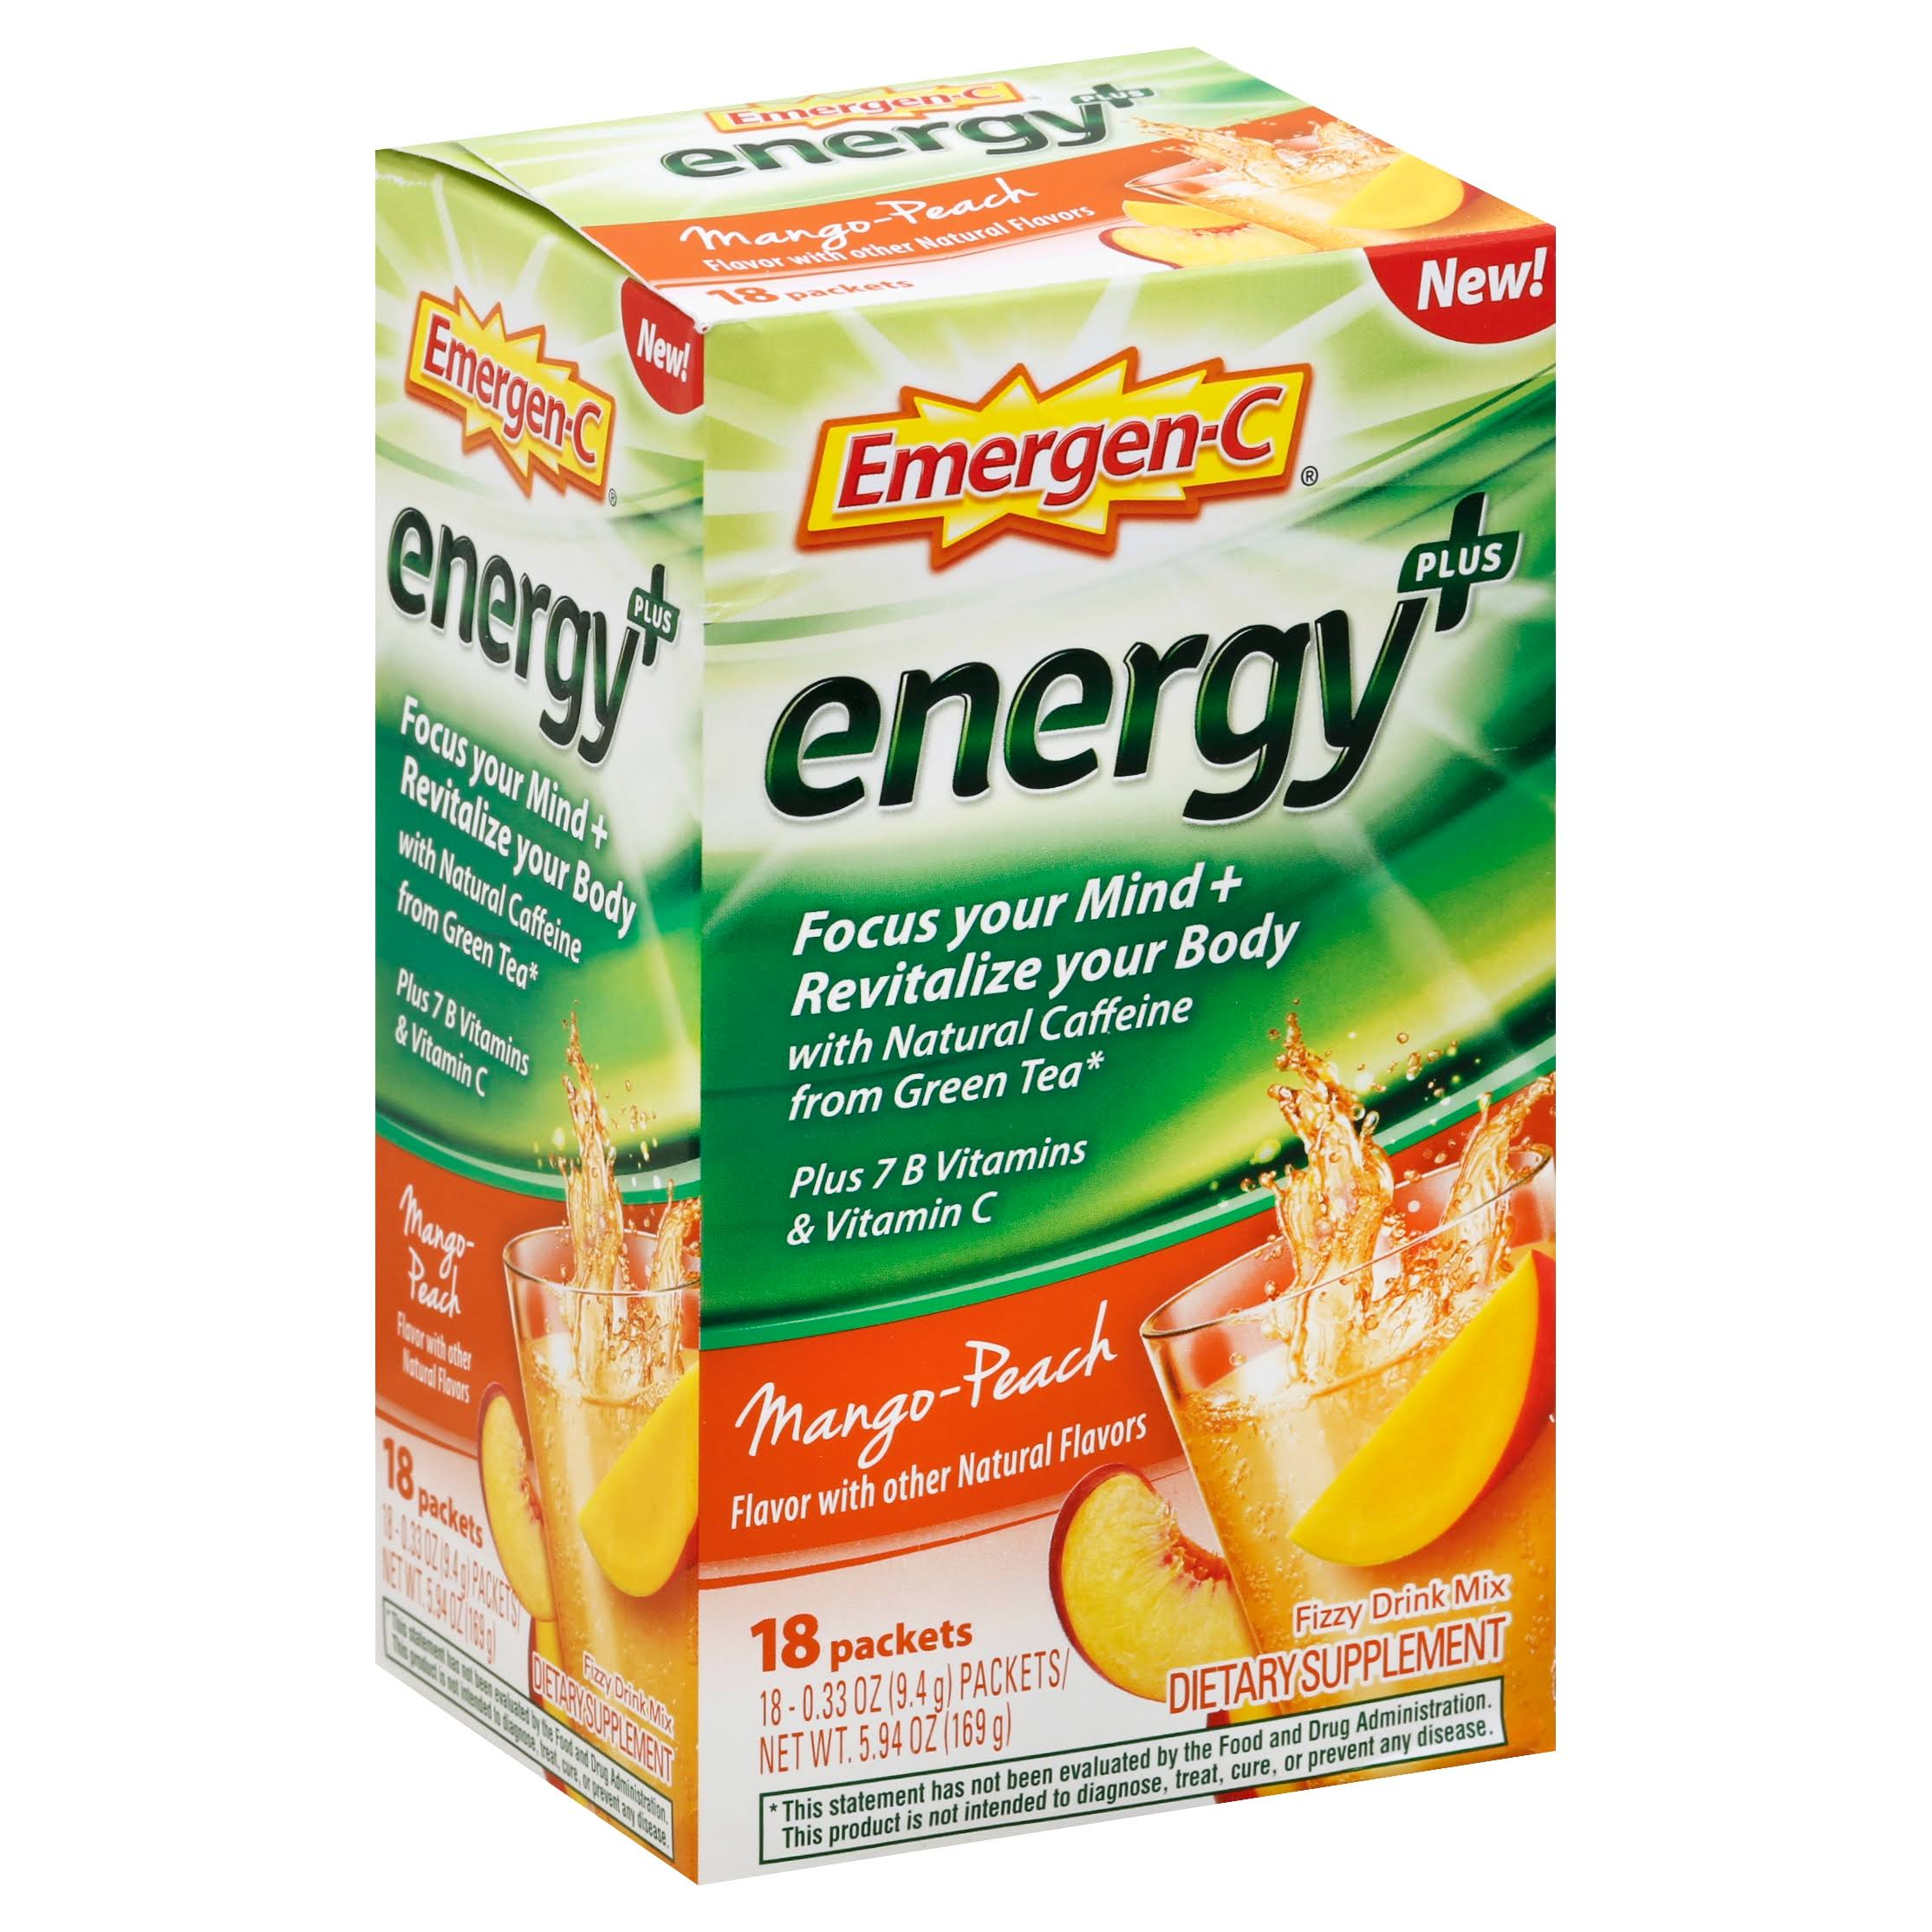 Emergen-C Energy+ Fizzy Drink Mix - Mango Peach, 18 Packets